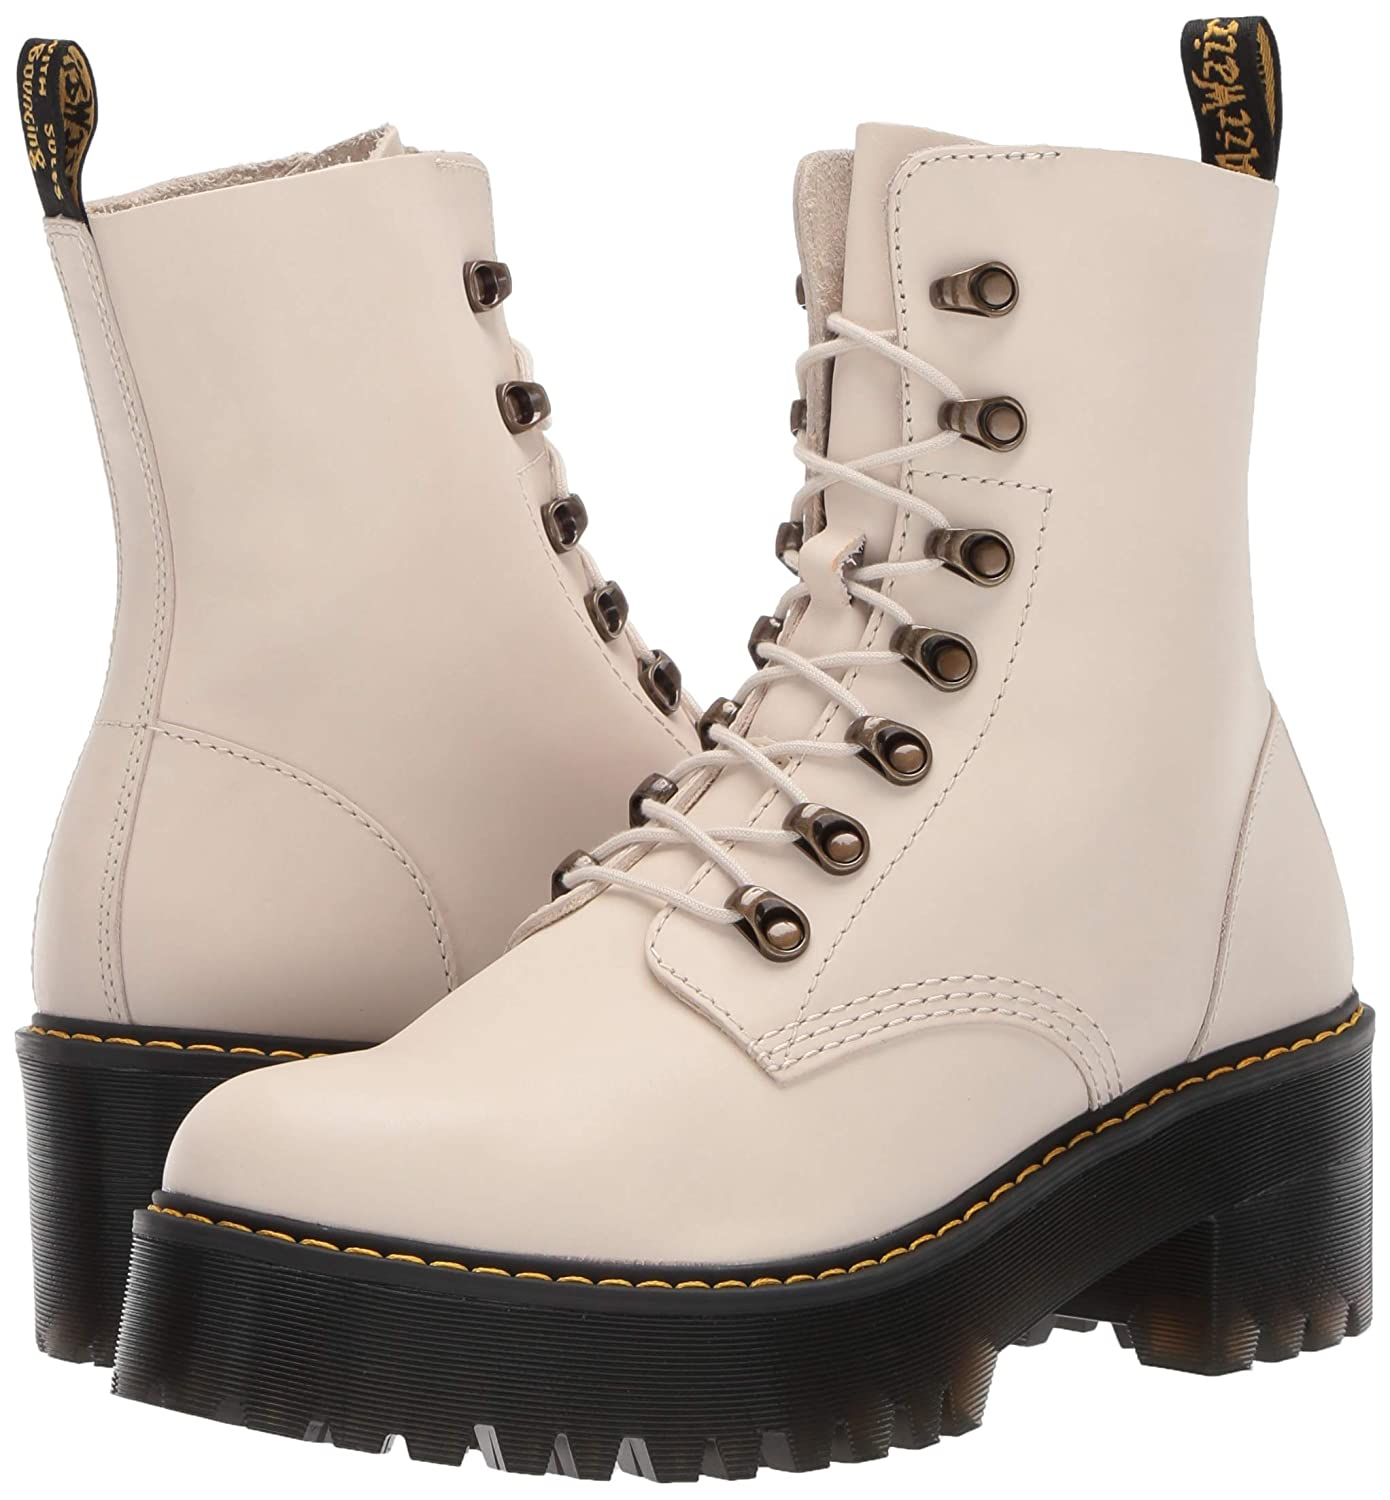 8c786eebc4 Amazon.com | Dr. Martens Women's Leona Fashion Boot | Mid-Calf